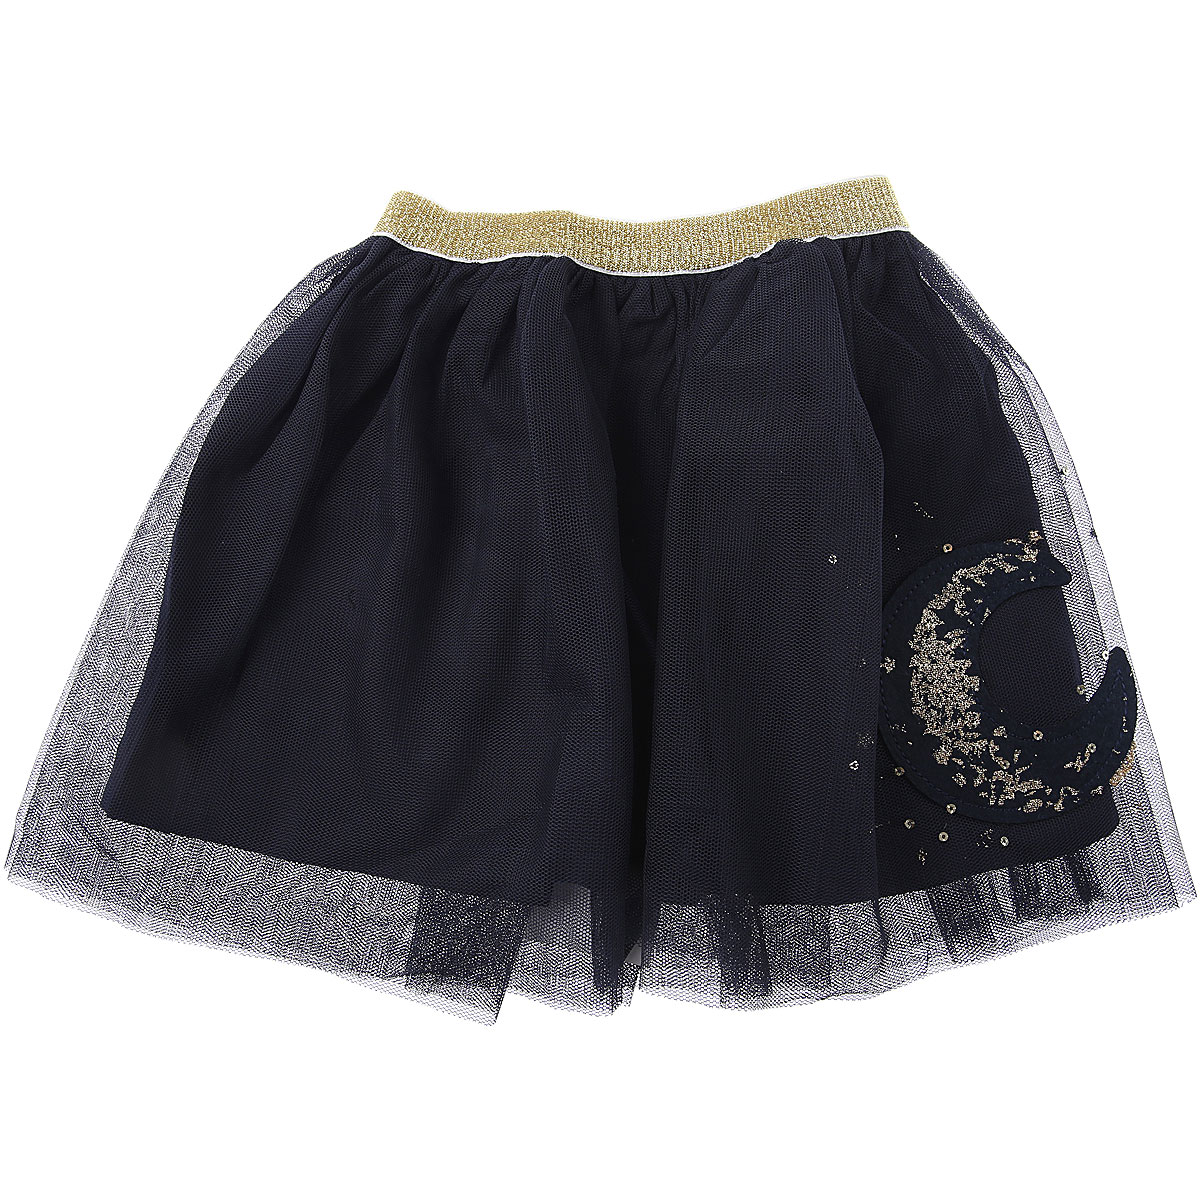 Billieblush Baby Skirts for Girls On Sale, Blue, polyester, 2019, 12M 18M 2Y 6M 9M